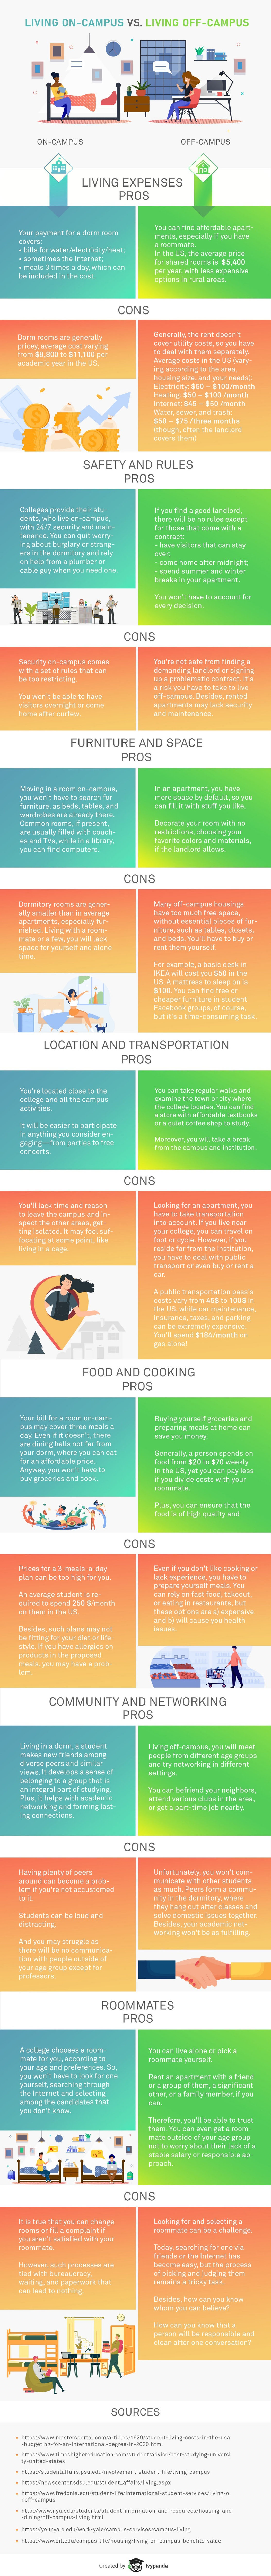 living-on-campus-vs-living-off-campus-infographic